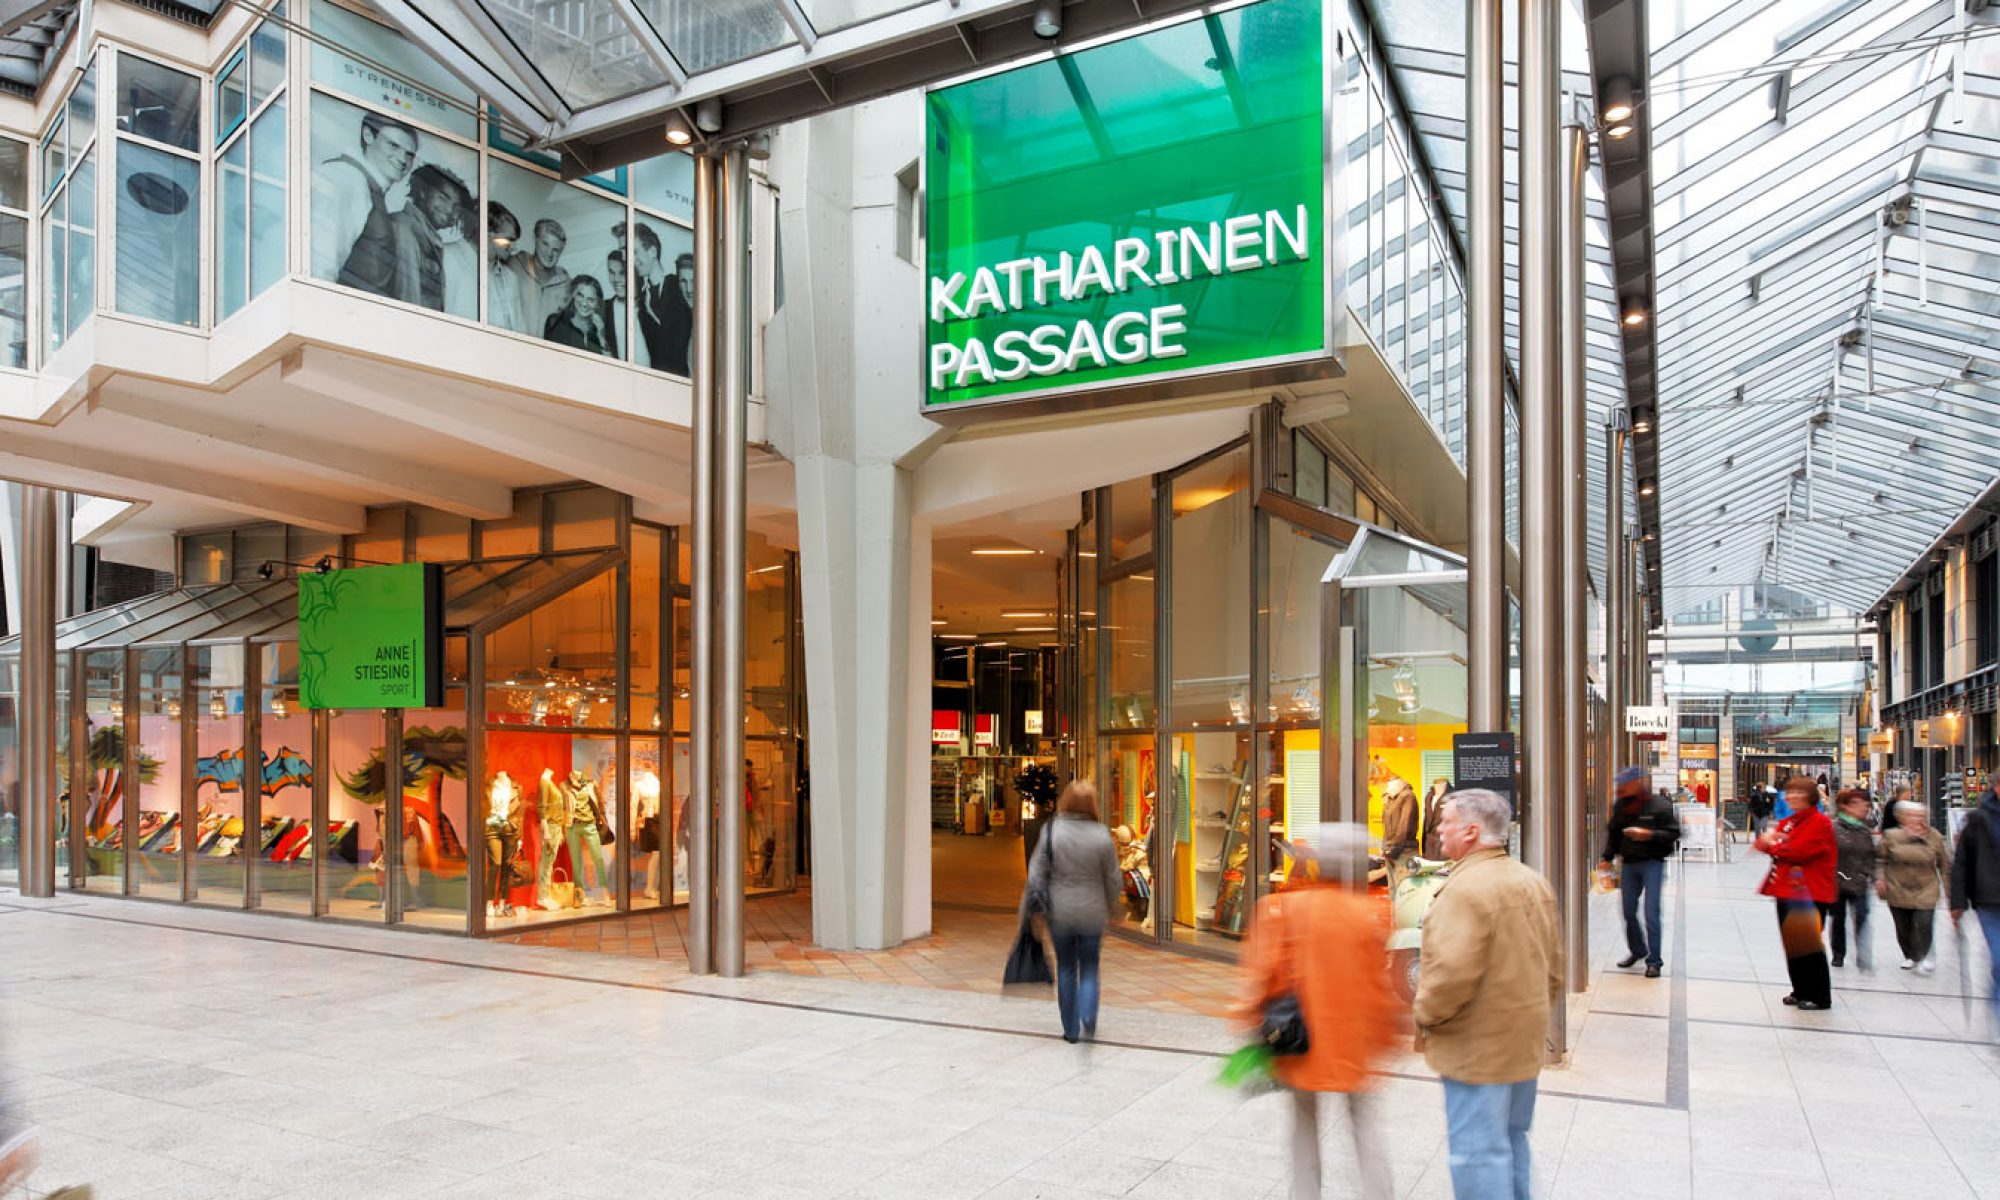 Katharinen-Passage